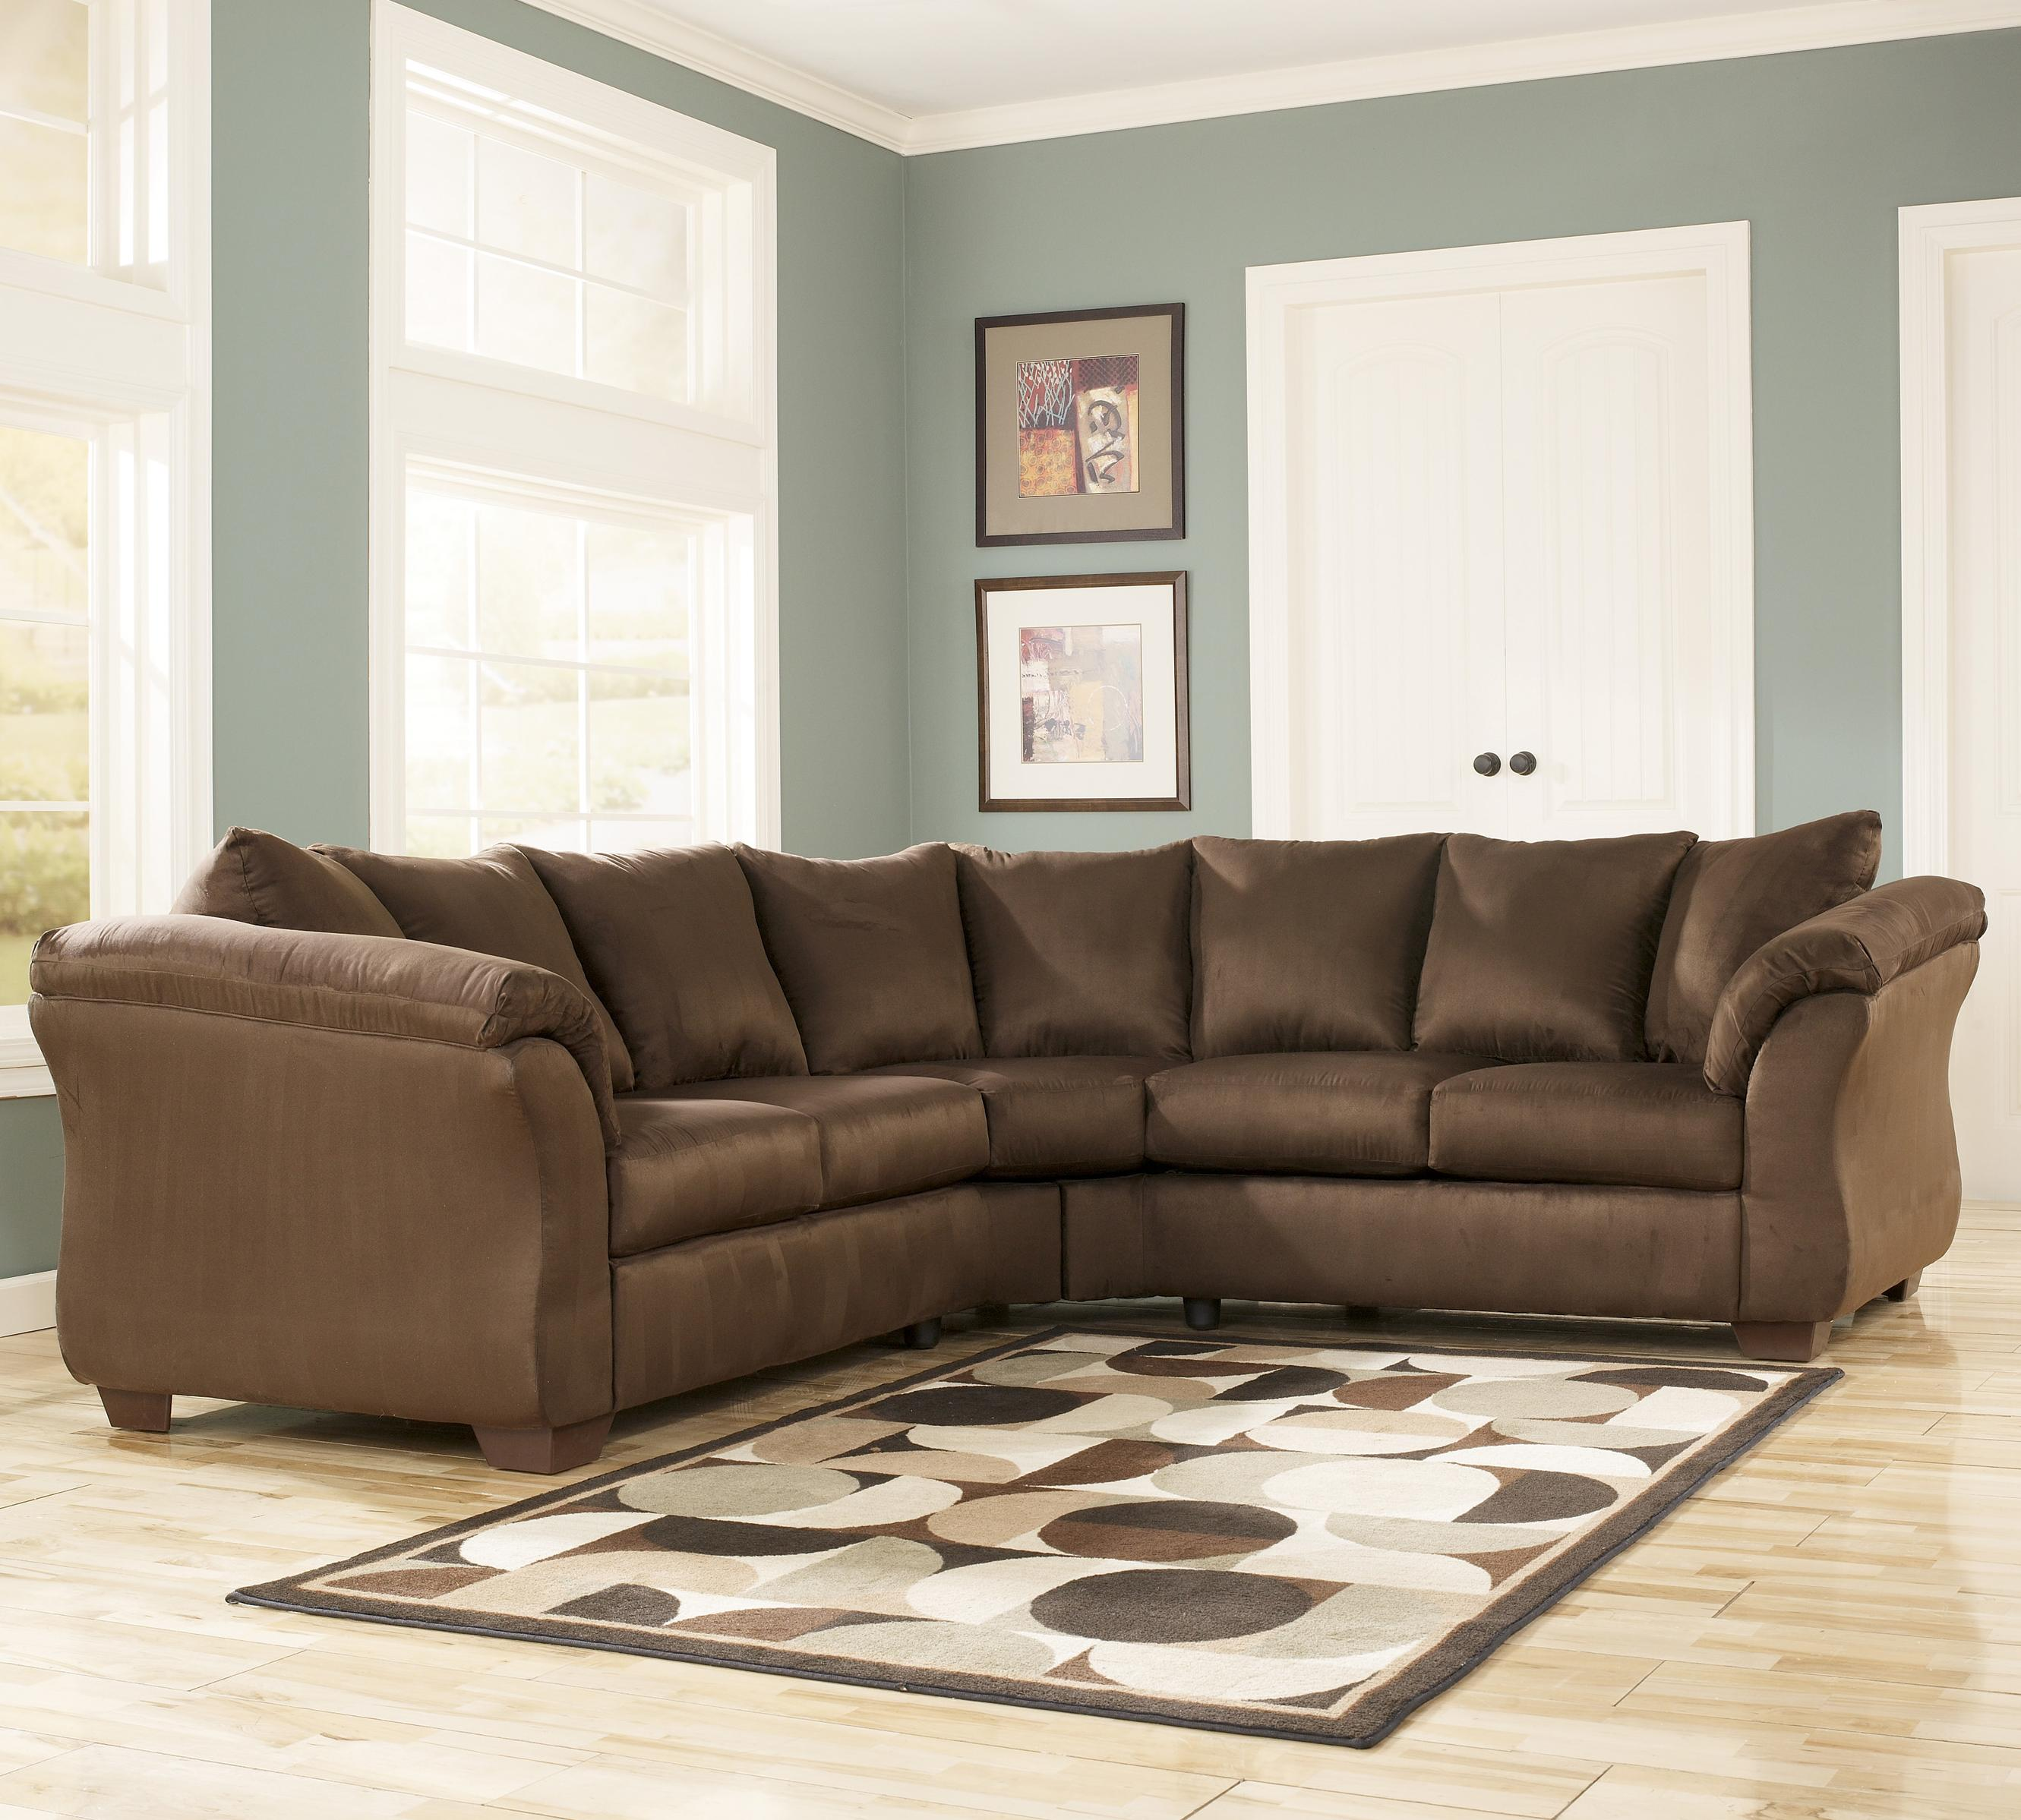 Signature Design By Ashley Darcy   Cafe Sectional Sofa   Item Number:  7500455+7500456